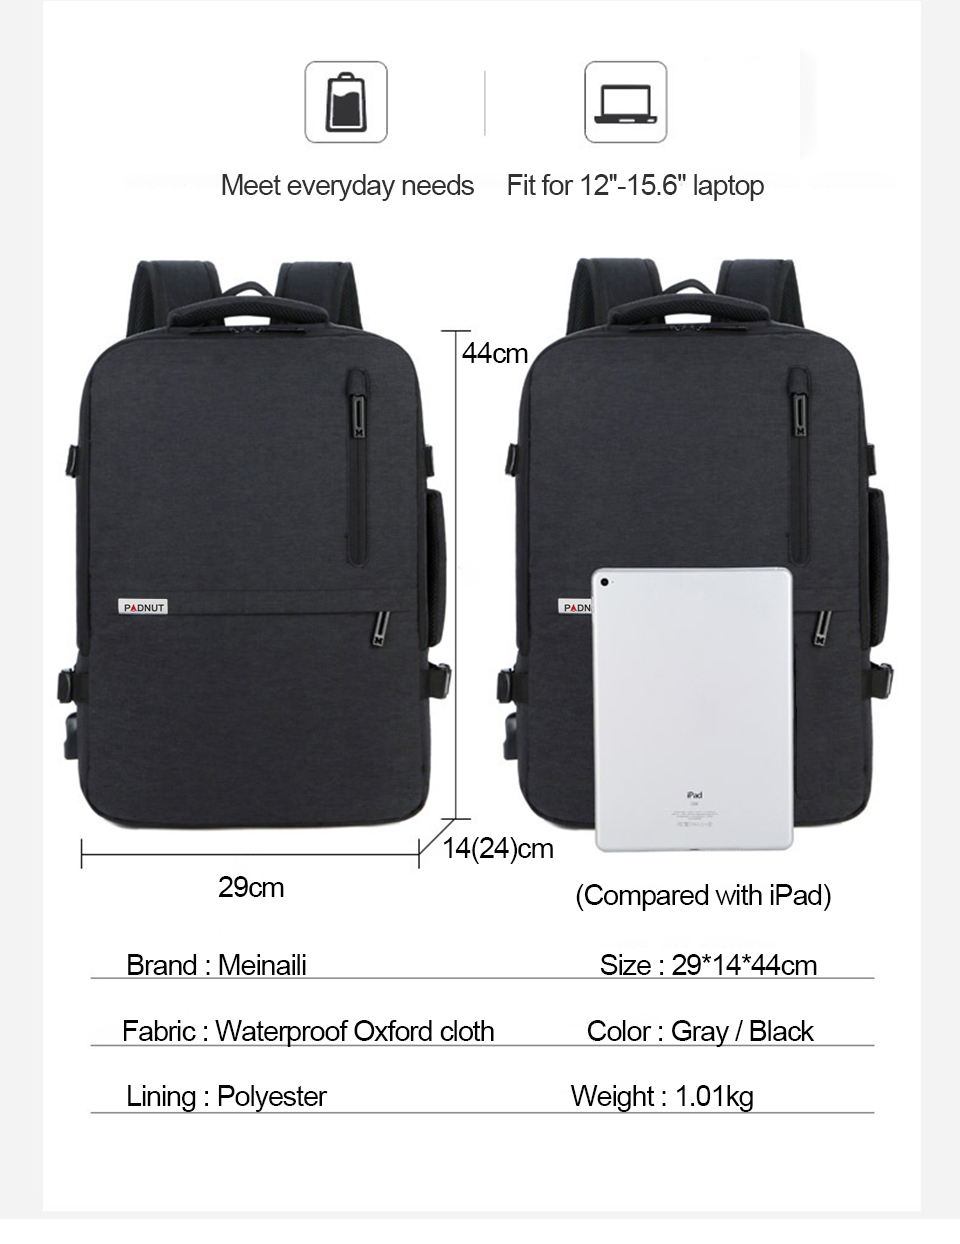 17''-Laptop-Backpack-Travel-Bag-Women-Men-Waterproof-75L-Large-Capacity-Bagpack-Anti-theft-Male-Female-Outdoor-15.6-Back-Packing_09_01